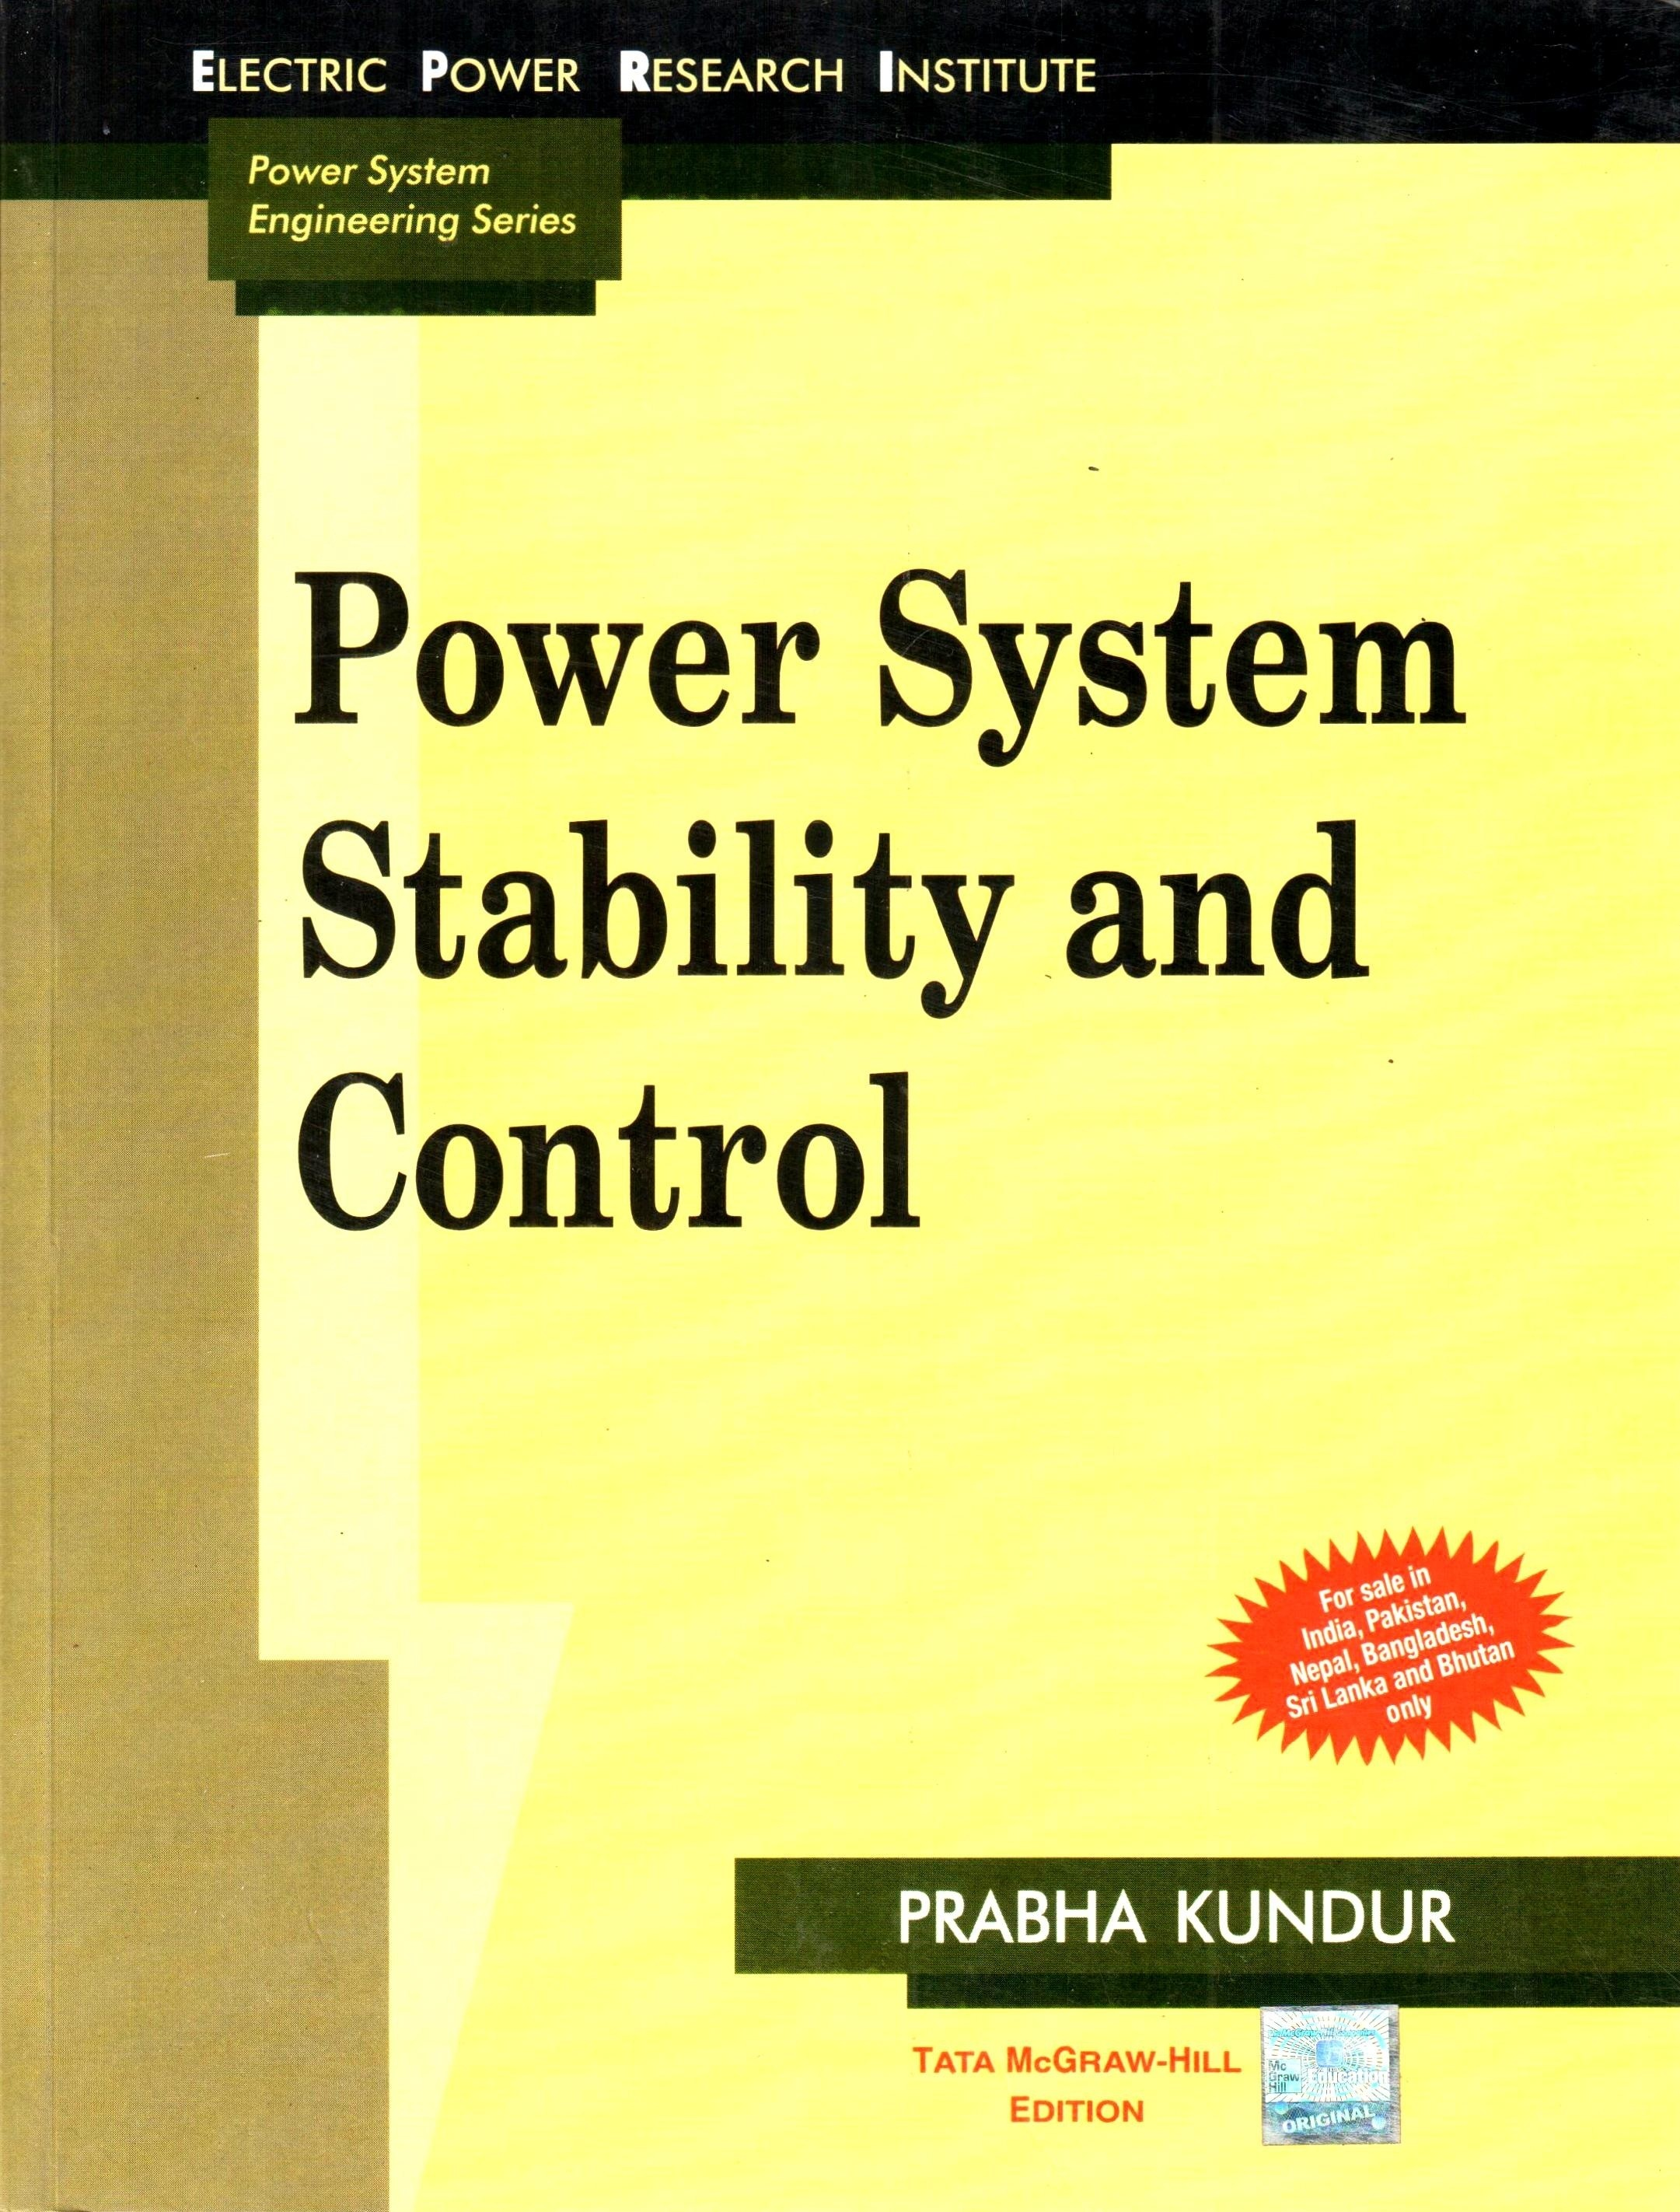 thesis on power system stability Power quality and voltage stability of power systems with a large share of distributed energy resources by yuva nandan reddy chejerla a thesis submitted in partial .